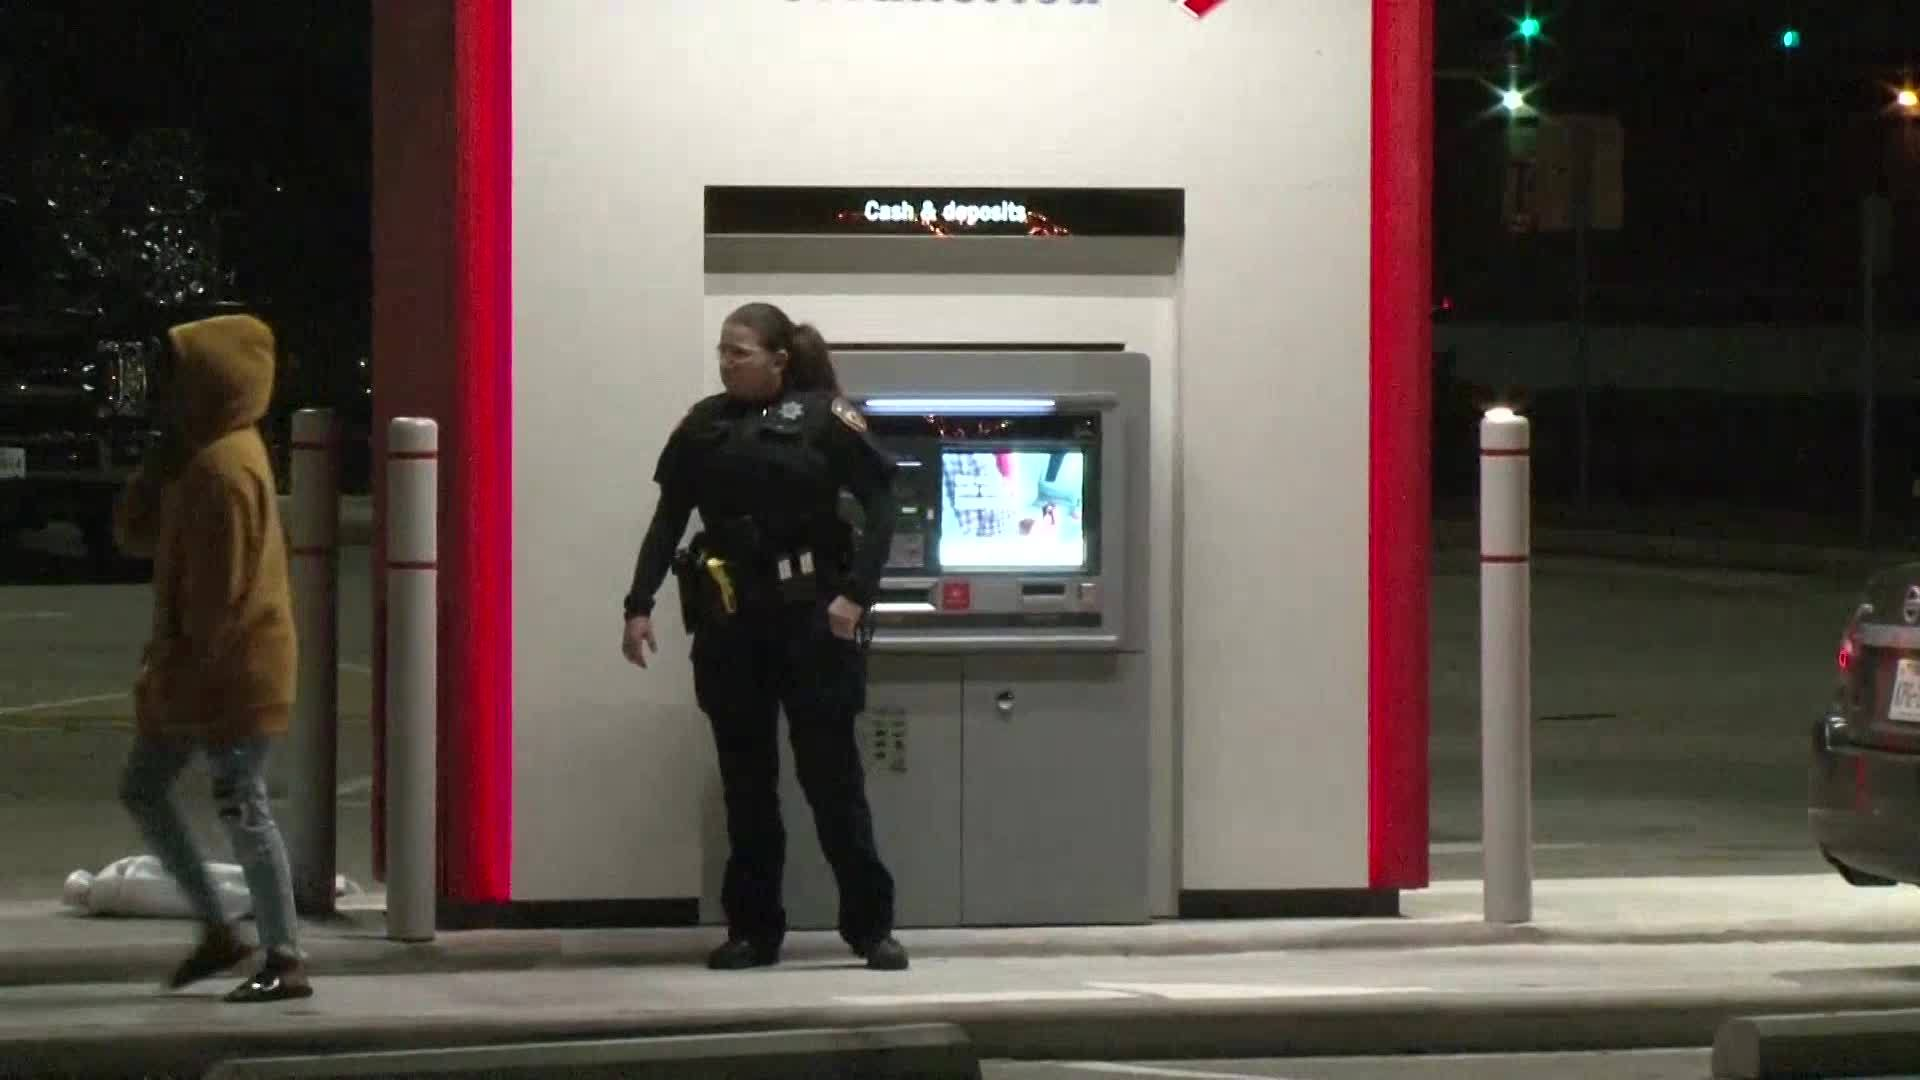 Houston ATM malfunctions, spits out $100 bills instead of